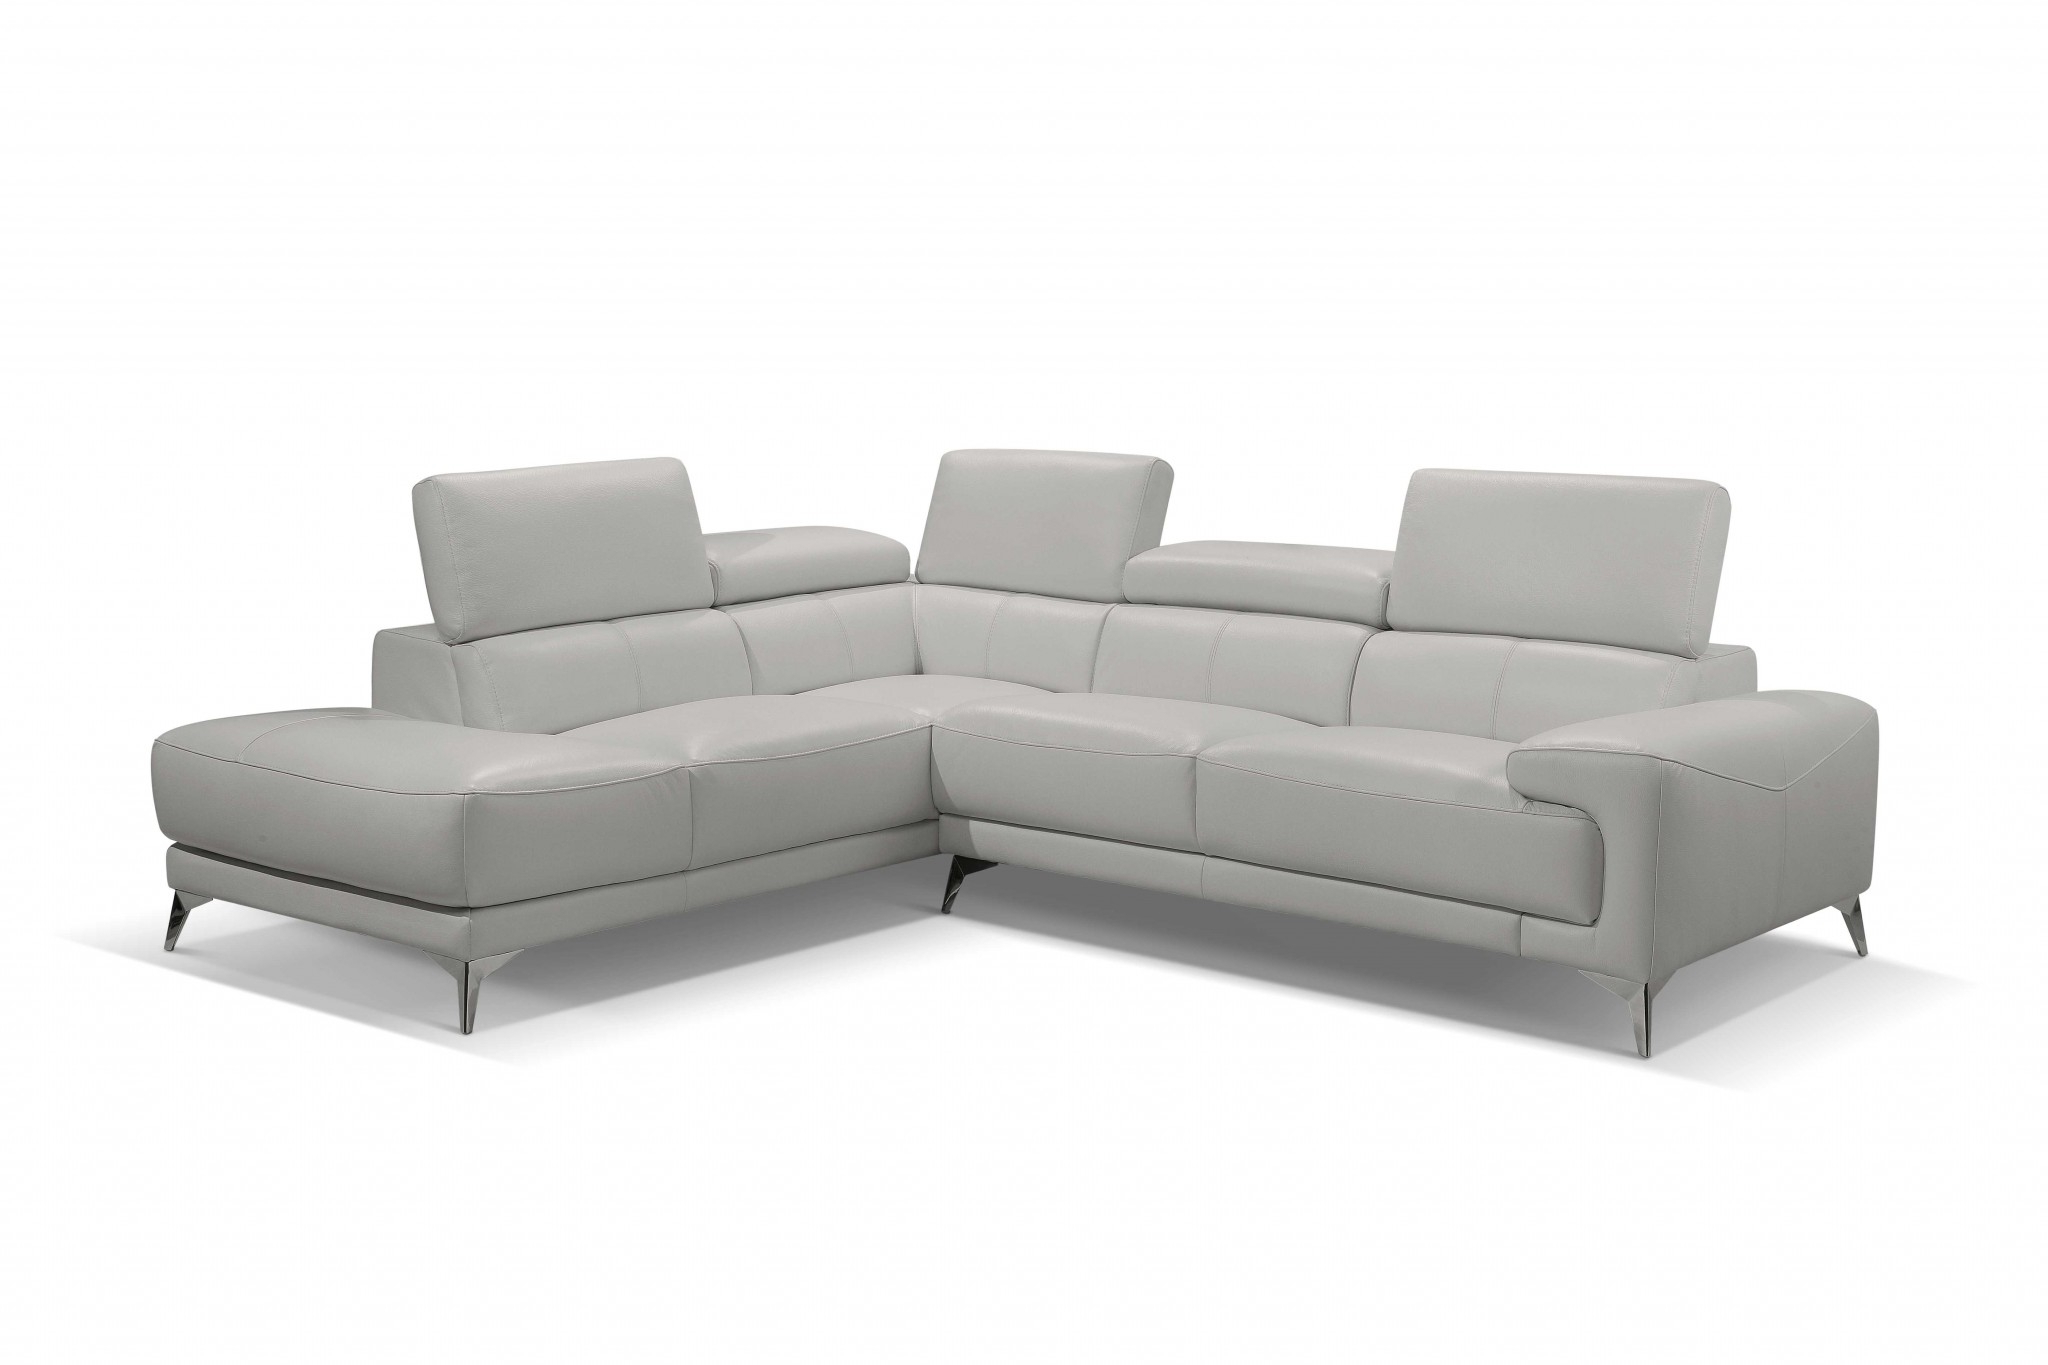 [%sectional, Chaise On Right When Facing, White Top Grain For Preferred Matilda 100% Top Grain Leather Chaise Sectional Sofas|matilda 100% Top Grain Leather Chaise Sectional Sofas With Well Known Sectional, Chaise On Right When Facing, White Top Grain|most Recently Released Matilda 100% Top Grain Leather Chaise Sectional Sofas With Regard To Sectional, Chaise On Right When Facing, White Top Grain|fashionable Sectional, Chaise On Right When Facing, White Top Grain Throughout Matilda 100% Top Grain Leather Chaise Sectional Sofas%] (View 12 of 20)